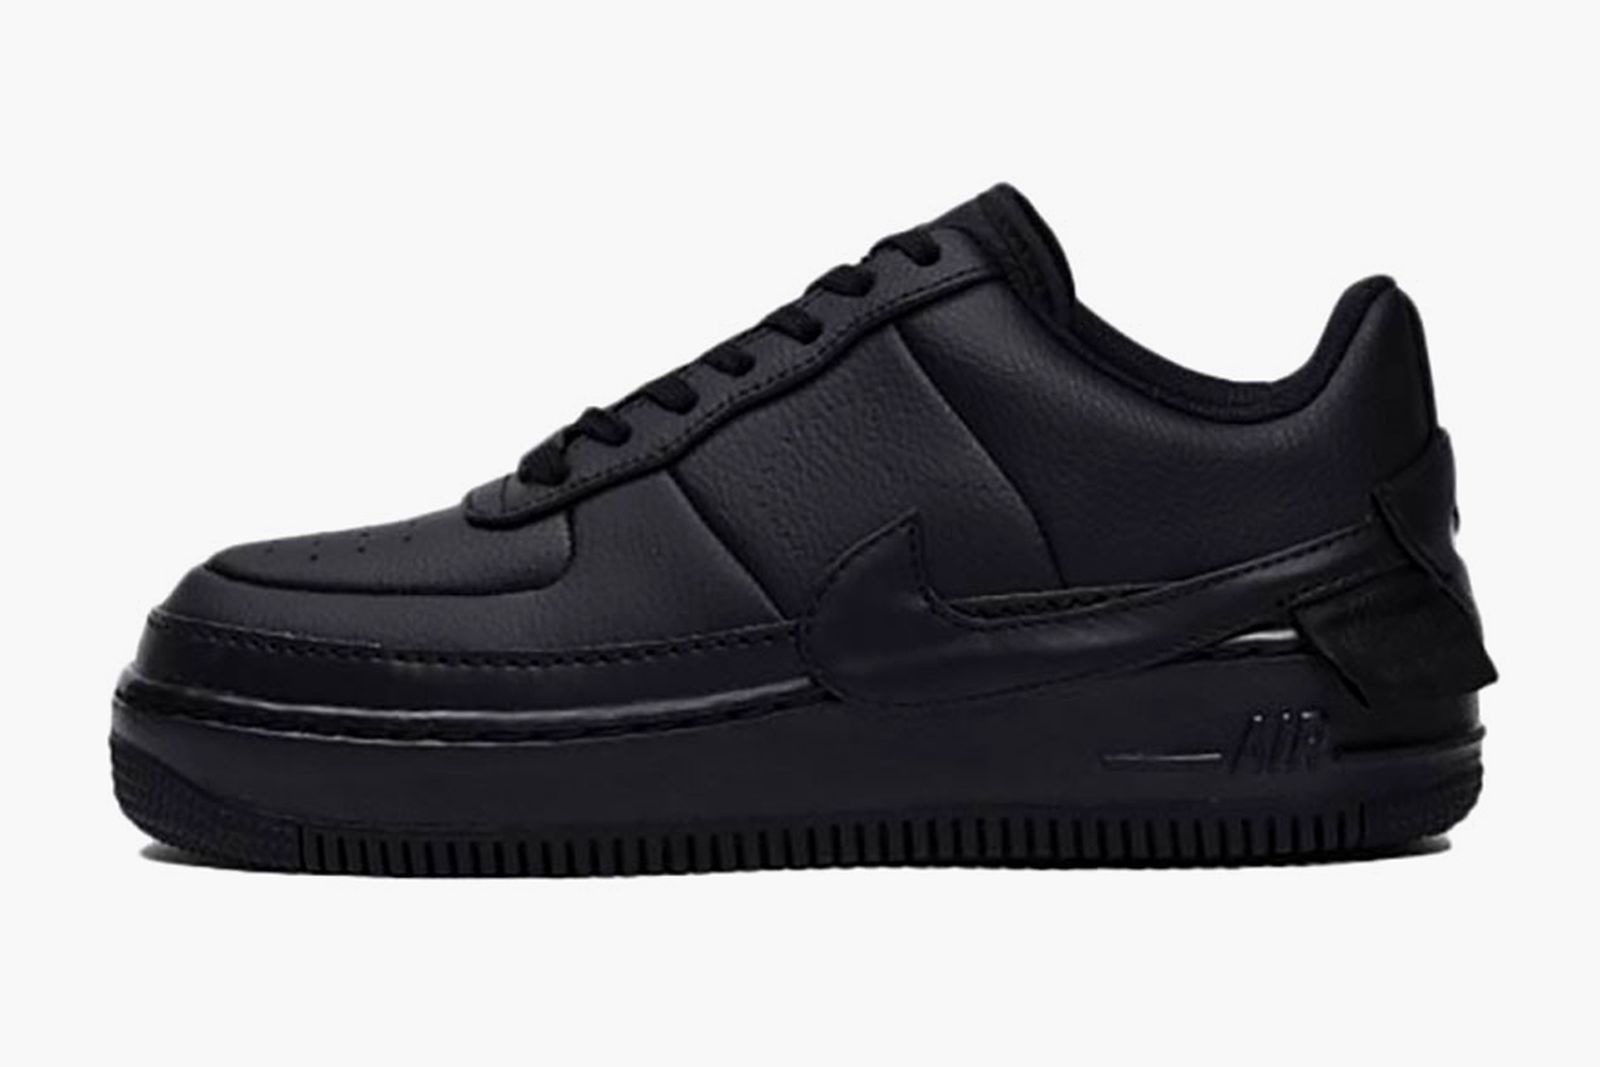 air force 1 jester release date price bbb Nike Air Force 1 Jester